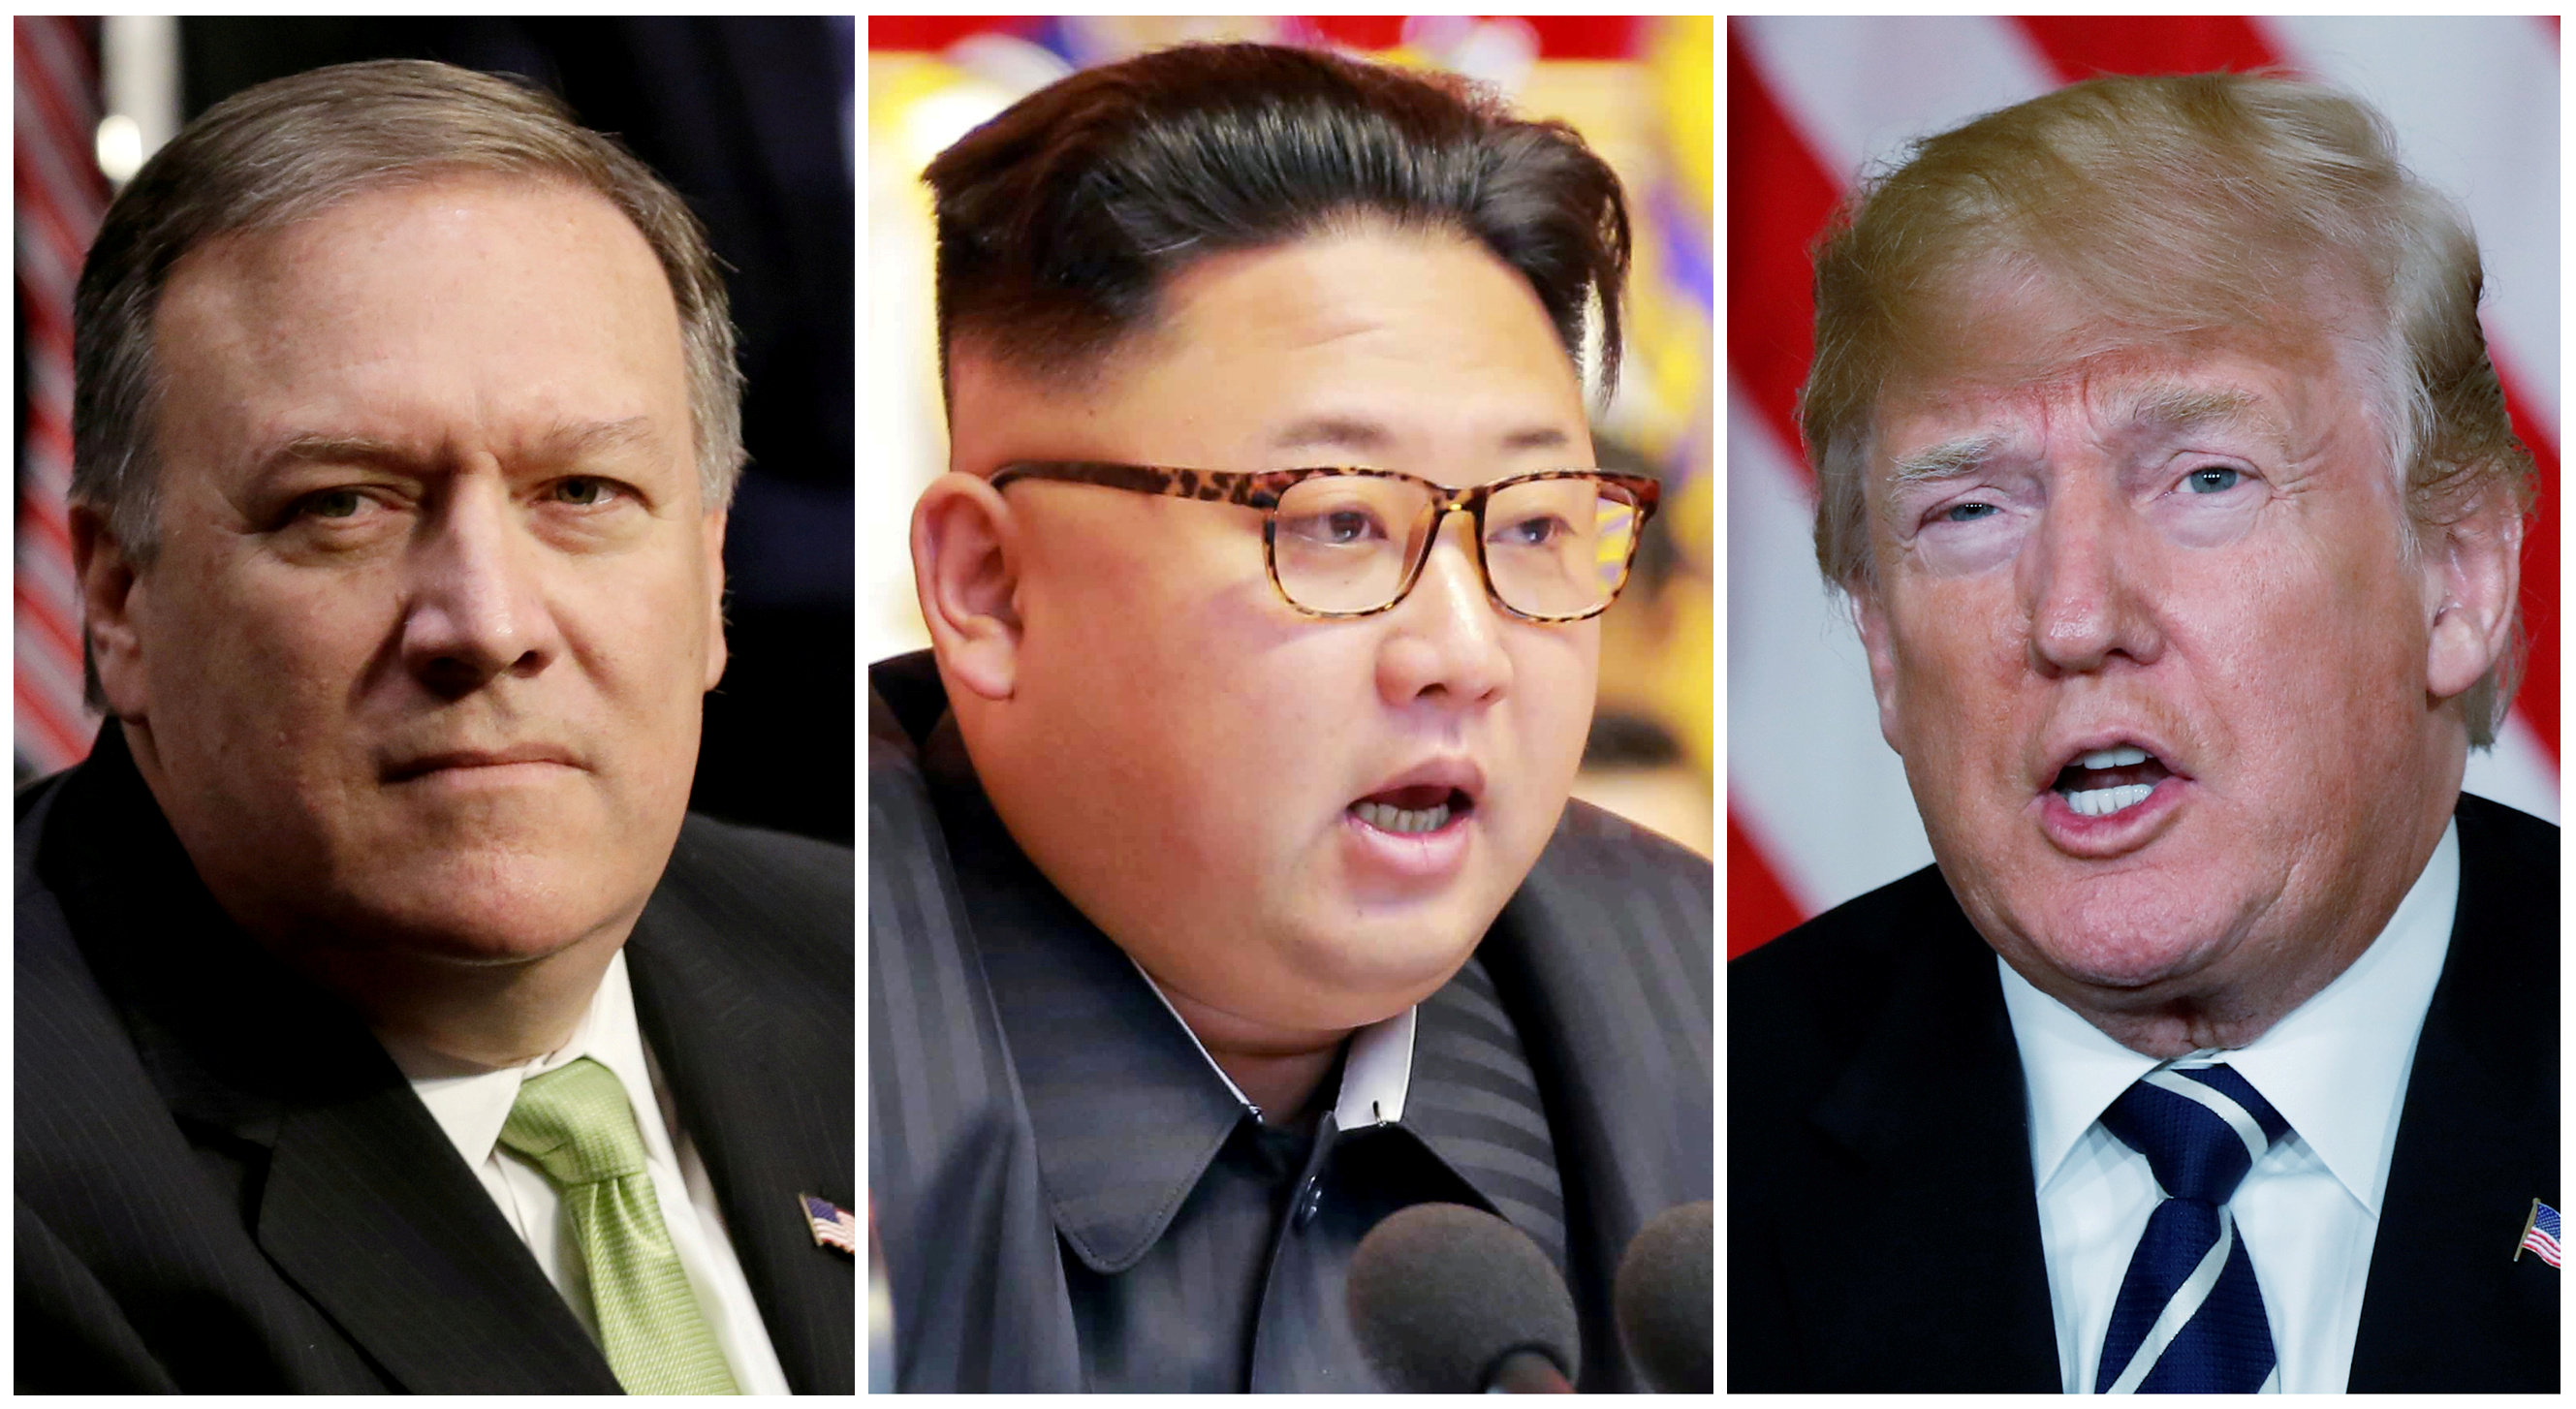 FILE PHOTO: A combination photo shows Mike Pompeo (L) in Washington, North Korean leader Kim Jong Un (C) in Pyongyang, North Korea and U.S. President Donald Trump (R), in Palm Beach, Florida, U.S., respectively from Reuters files. REUTERS/Yuri Gripas (L) & KCNA handout via Reuters & Kevin Lamarque (R)